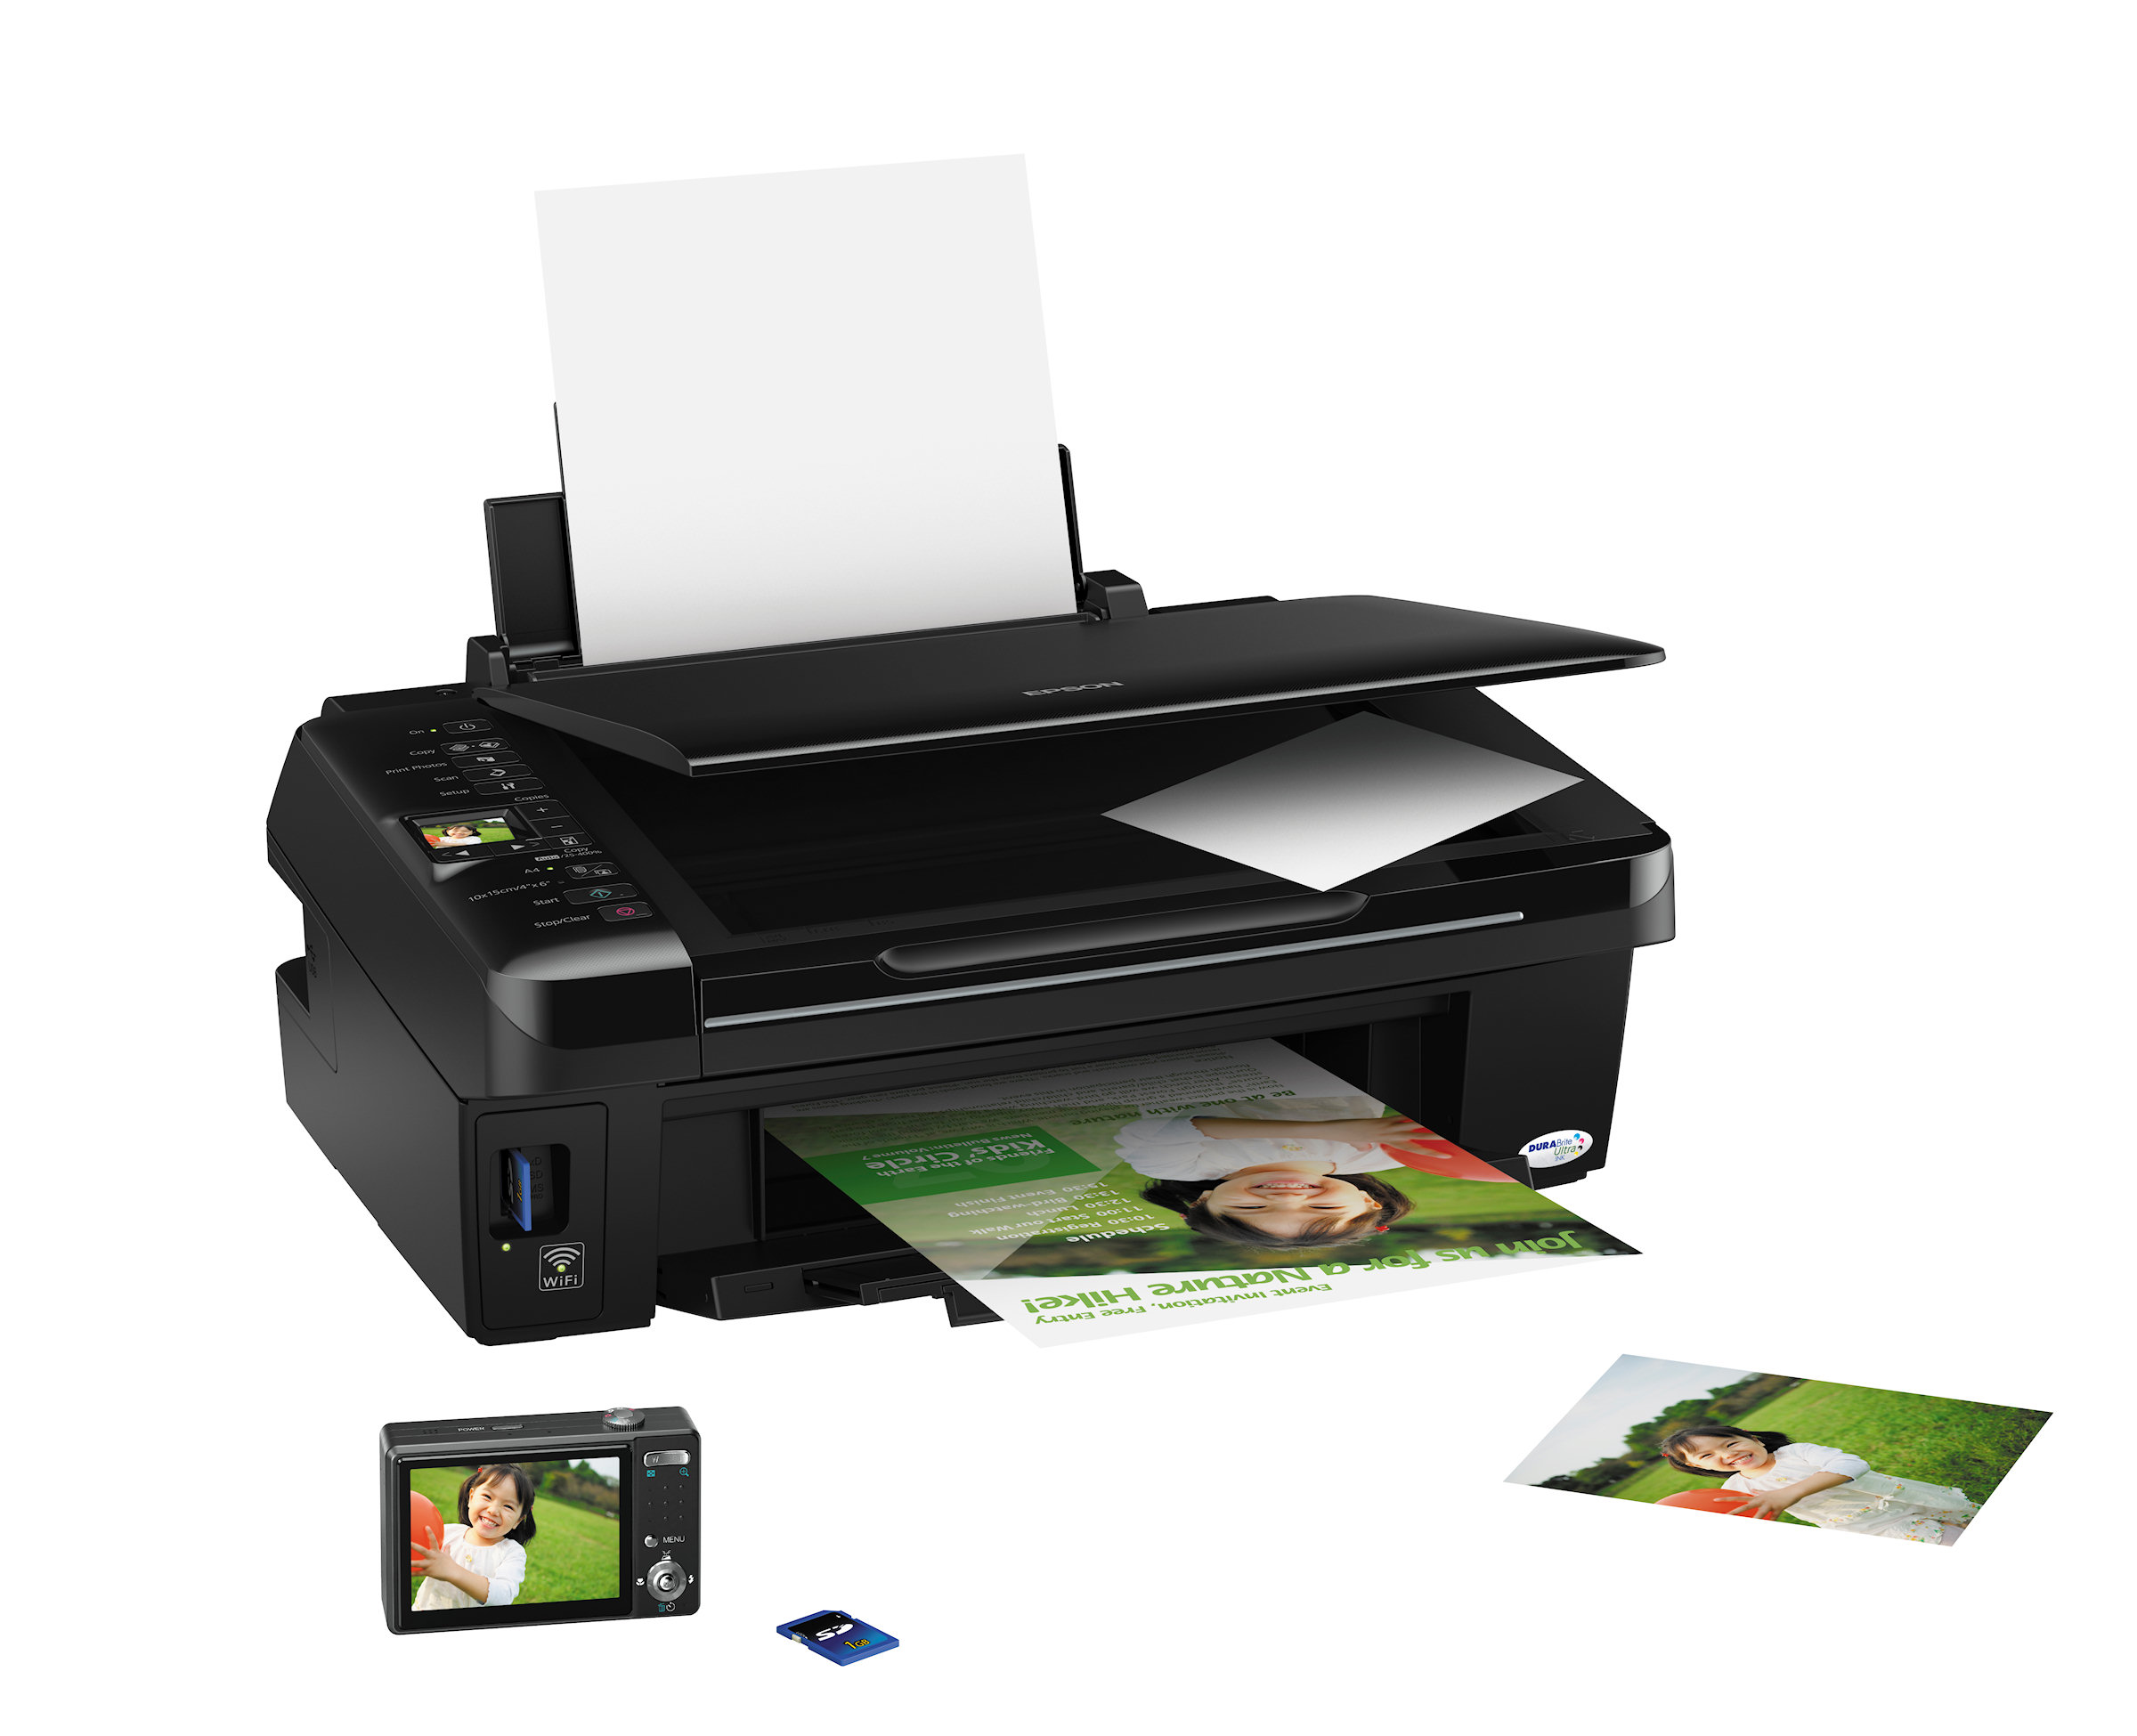 Epson P50: instructions, specifications and reviews 28